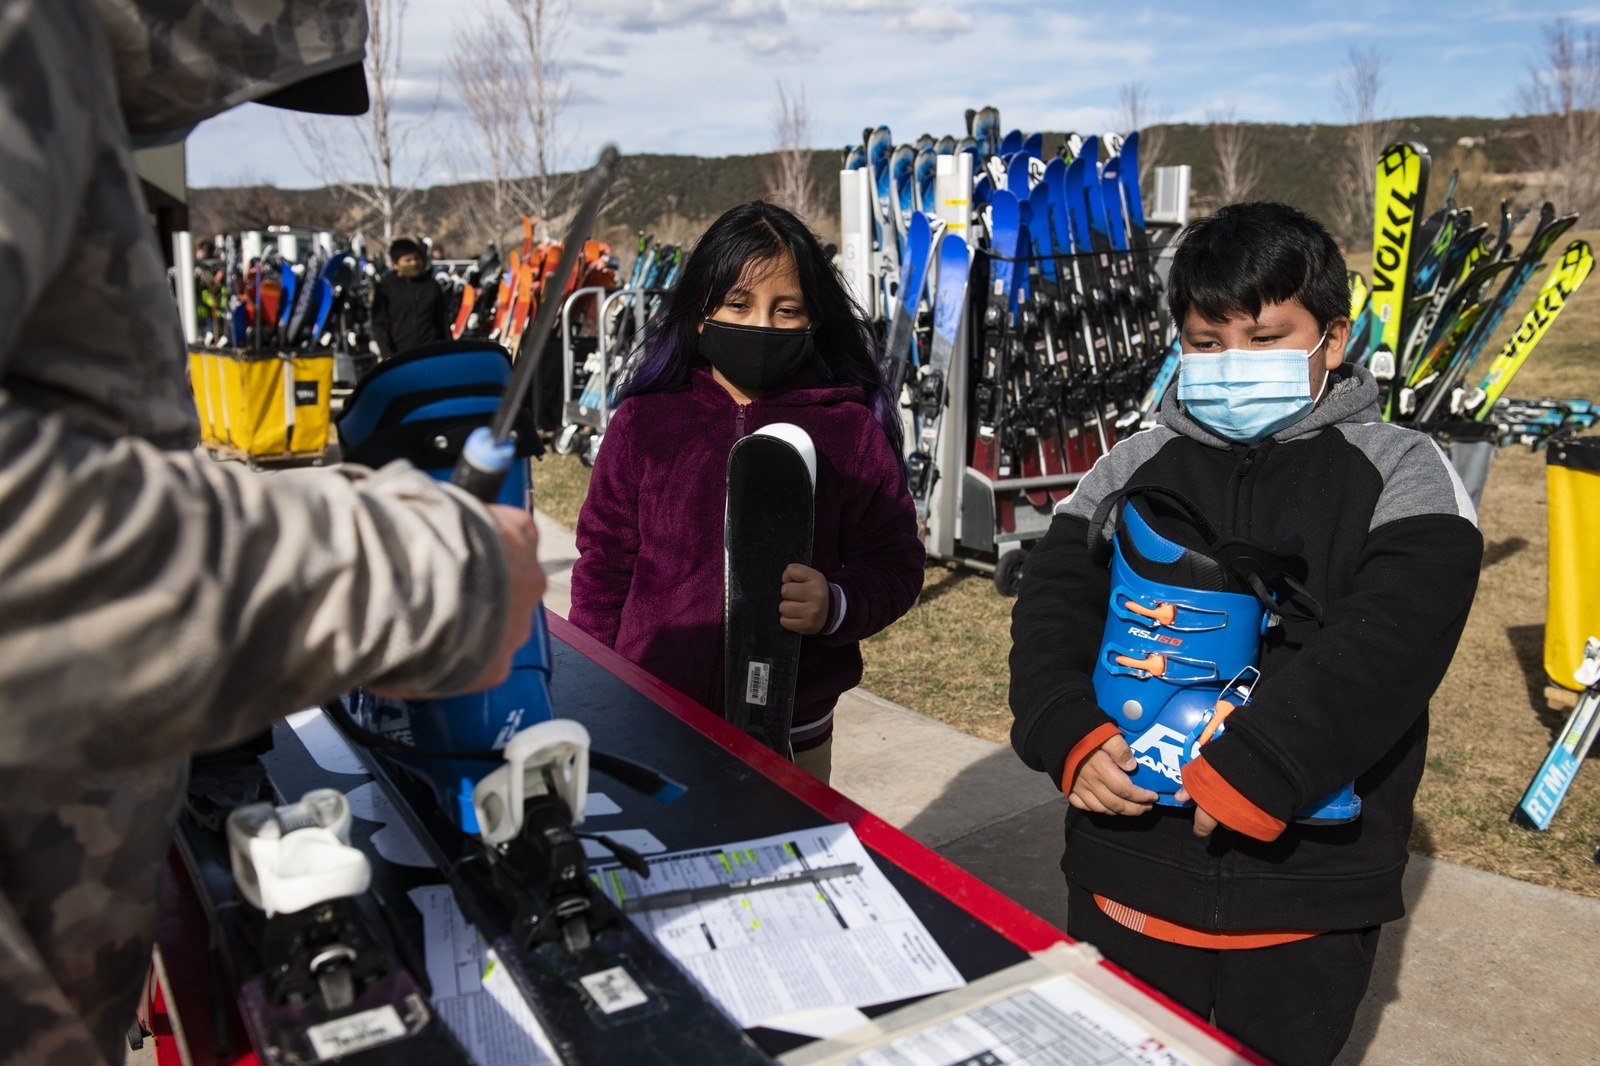 Gorsuch ski technician Alex Guerin, left, helps Geraldine Moron, 9, left, and her brother Dylan Maron, 7, with their first pair of skis at the Gorsuch and AVSC equipment day in El Jebel on Wednesday, Nov. 18, 2020. This will be both childrens first season skiing and Geraldine said shes excited, but a little nervous. (Kelsey Brunner/The Aspen Times)